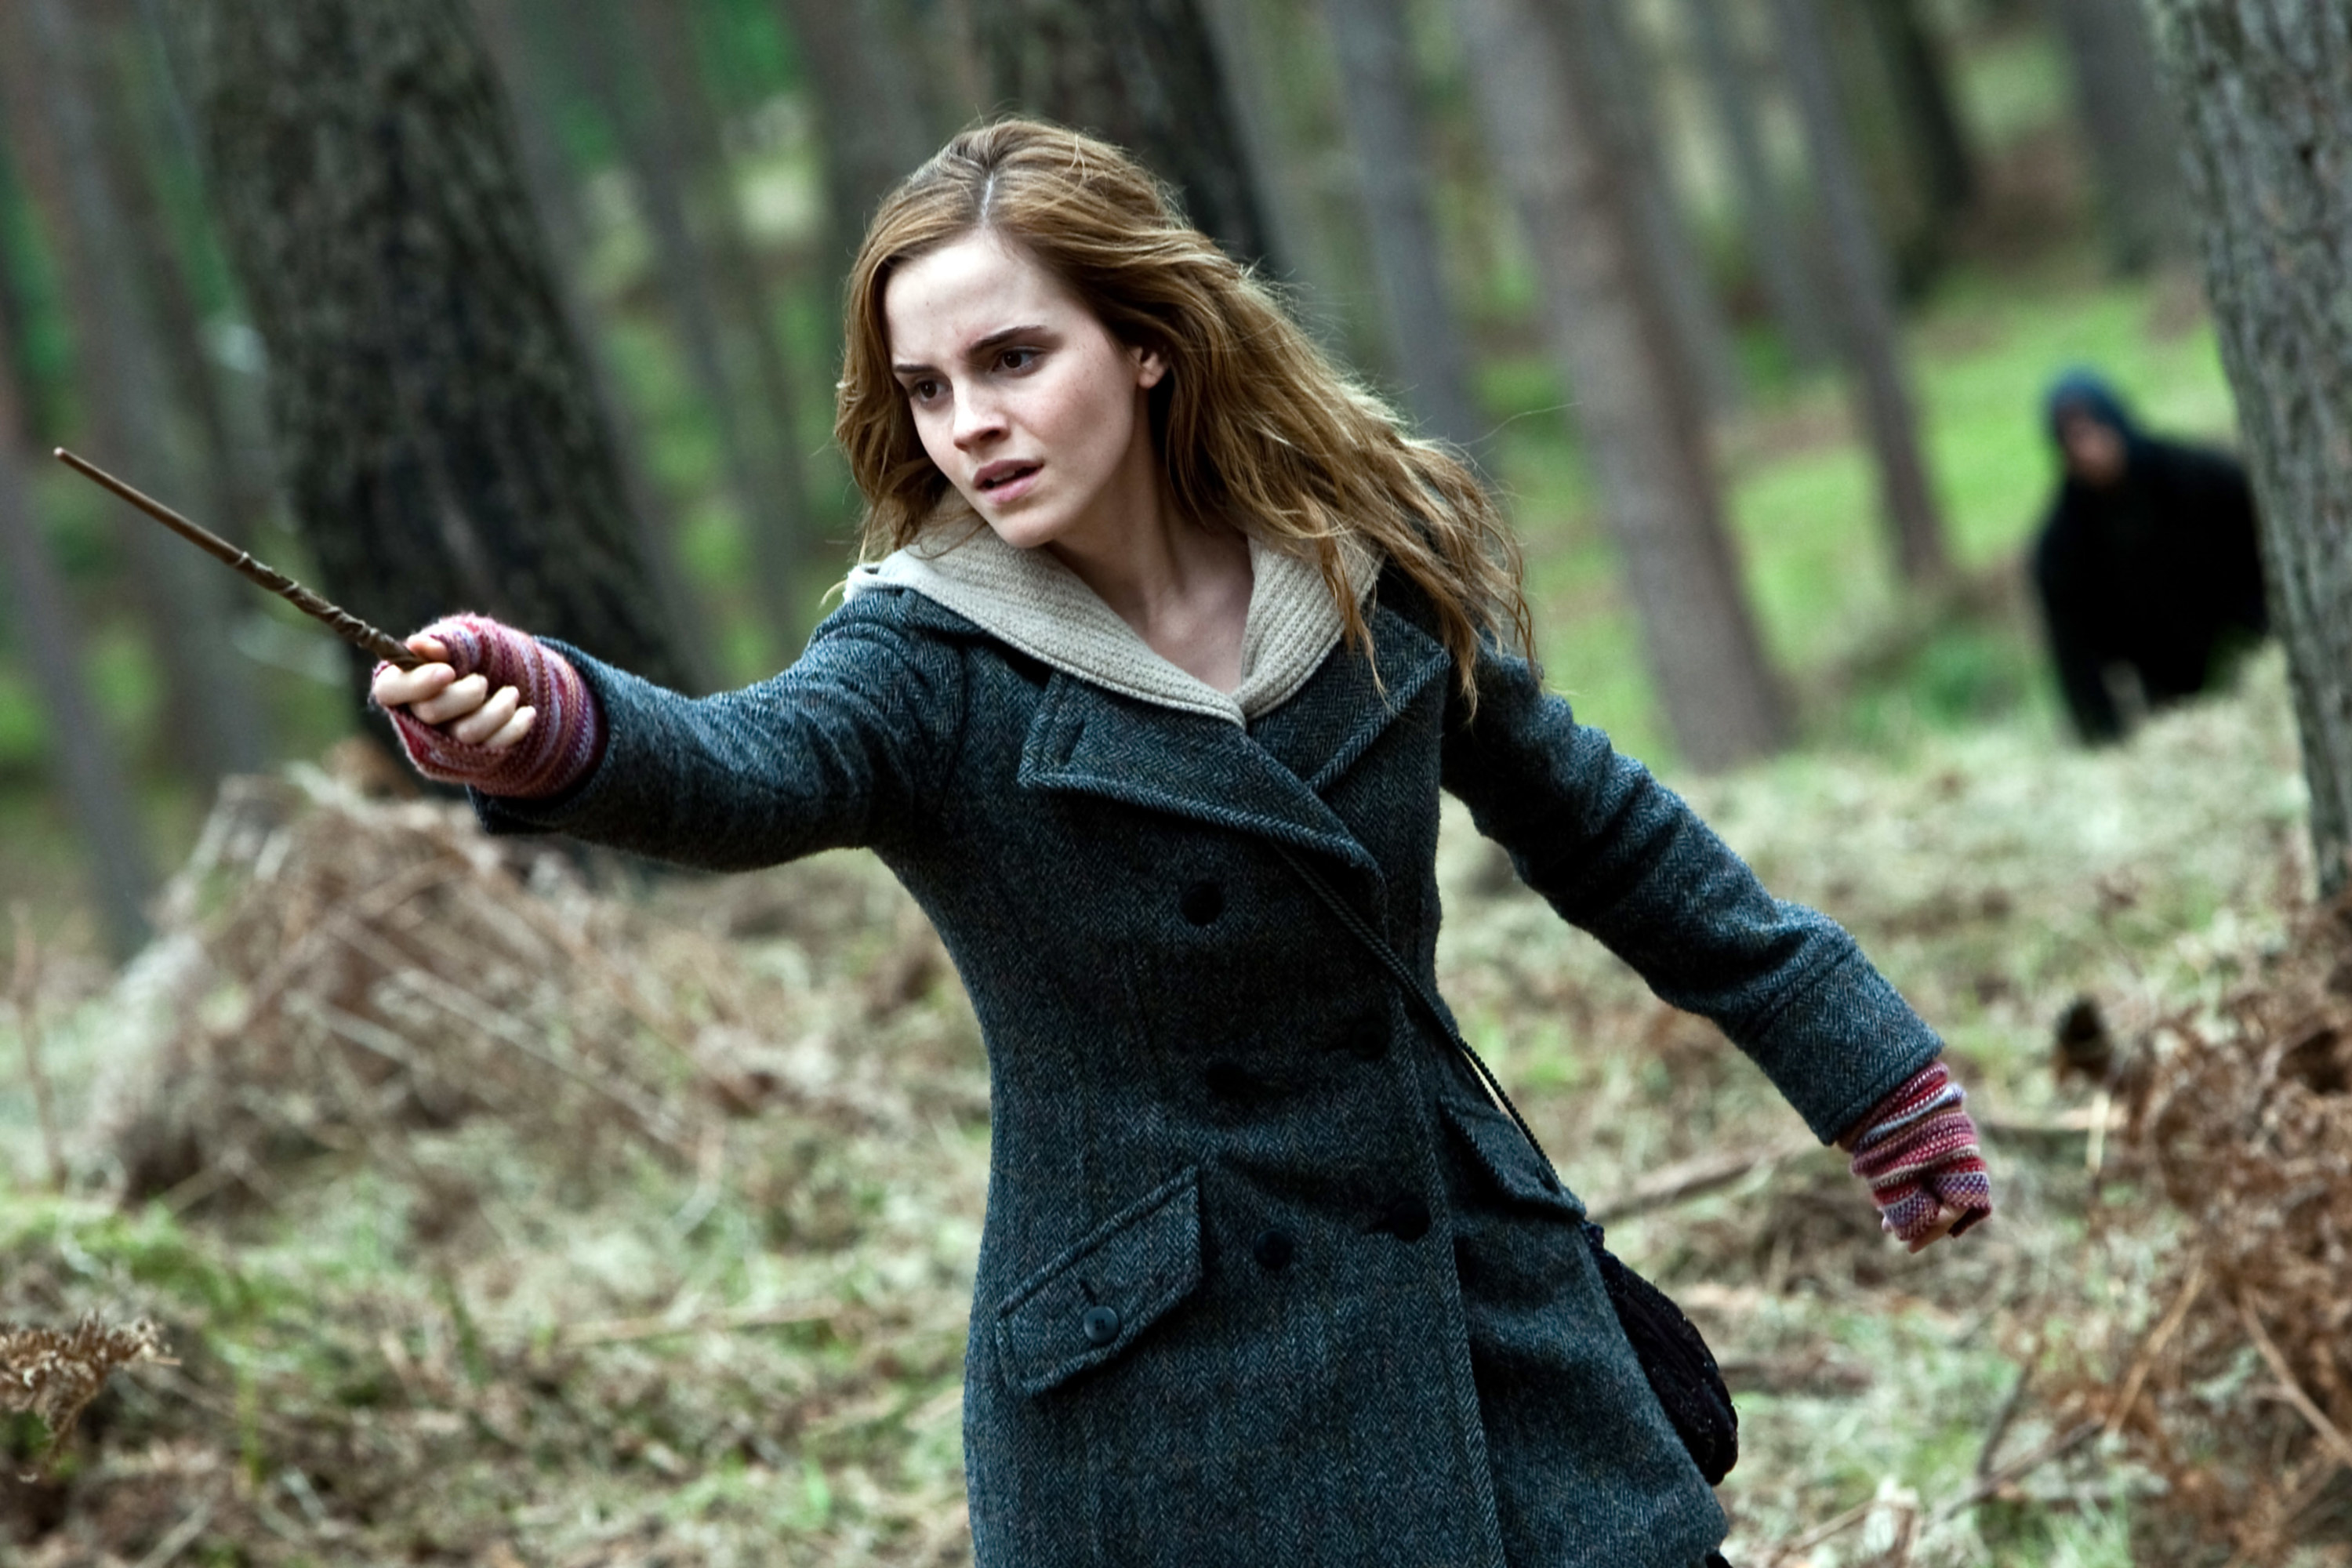 Hermione holding her wand in the forest